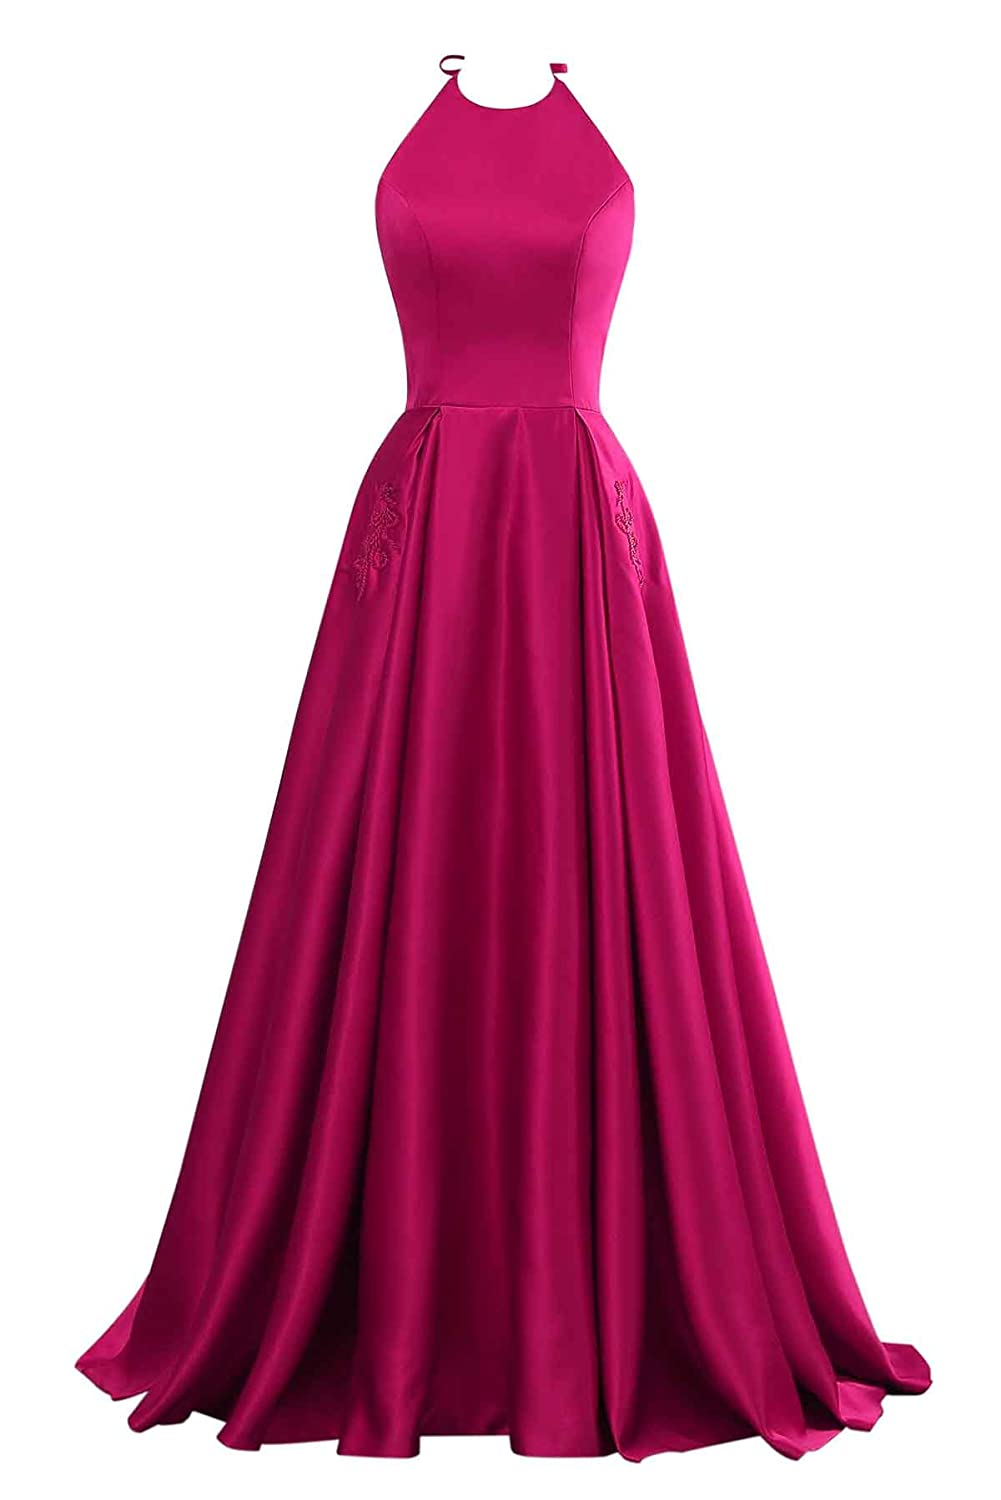 Fuchsia Changuan Halter Aline Satin Evening Prom Dresses for Women Beaded Long Formal Gown with Pockets